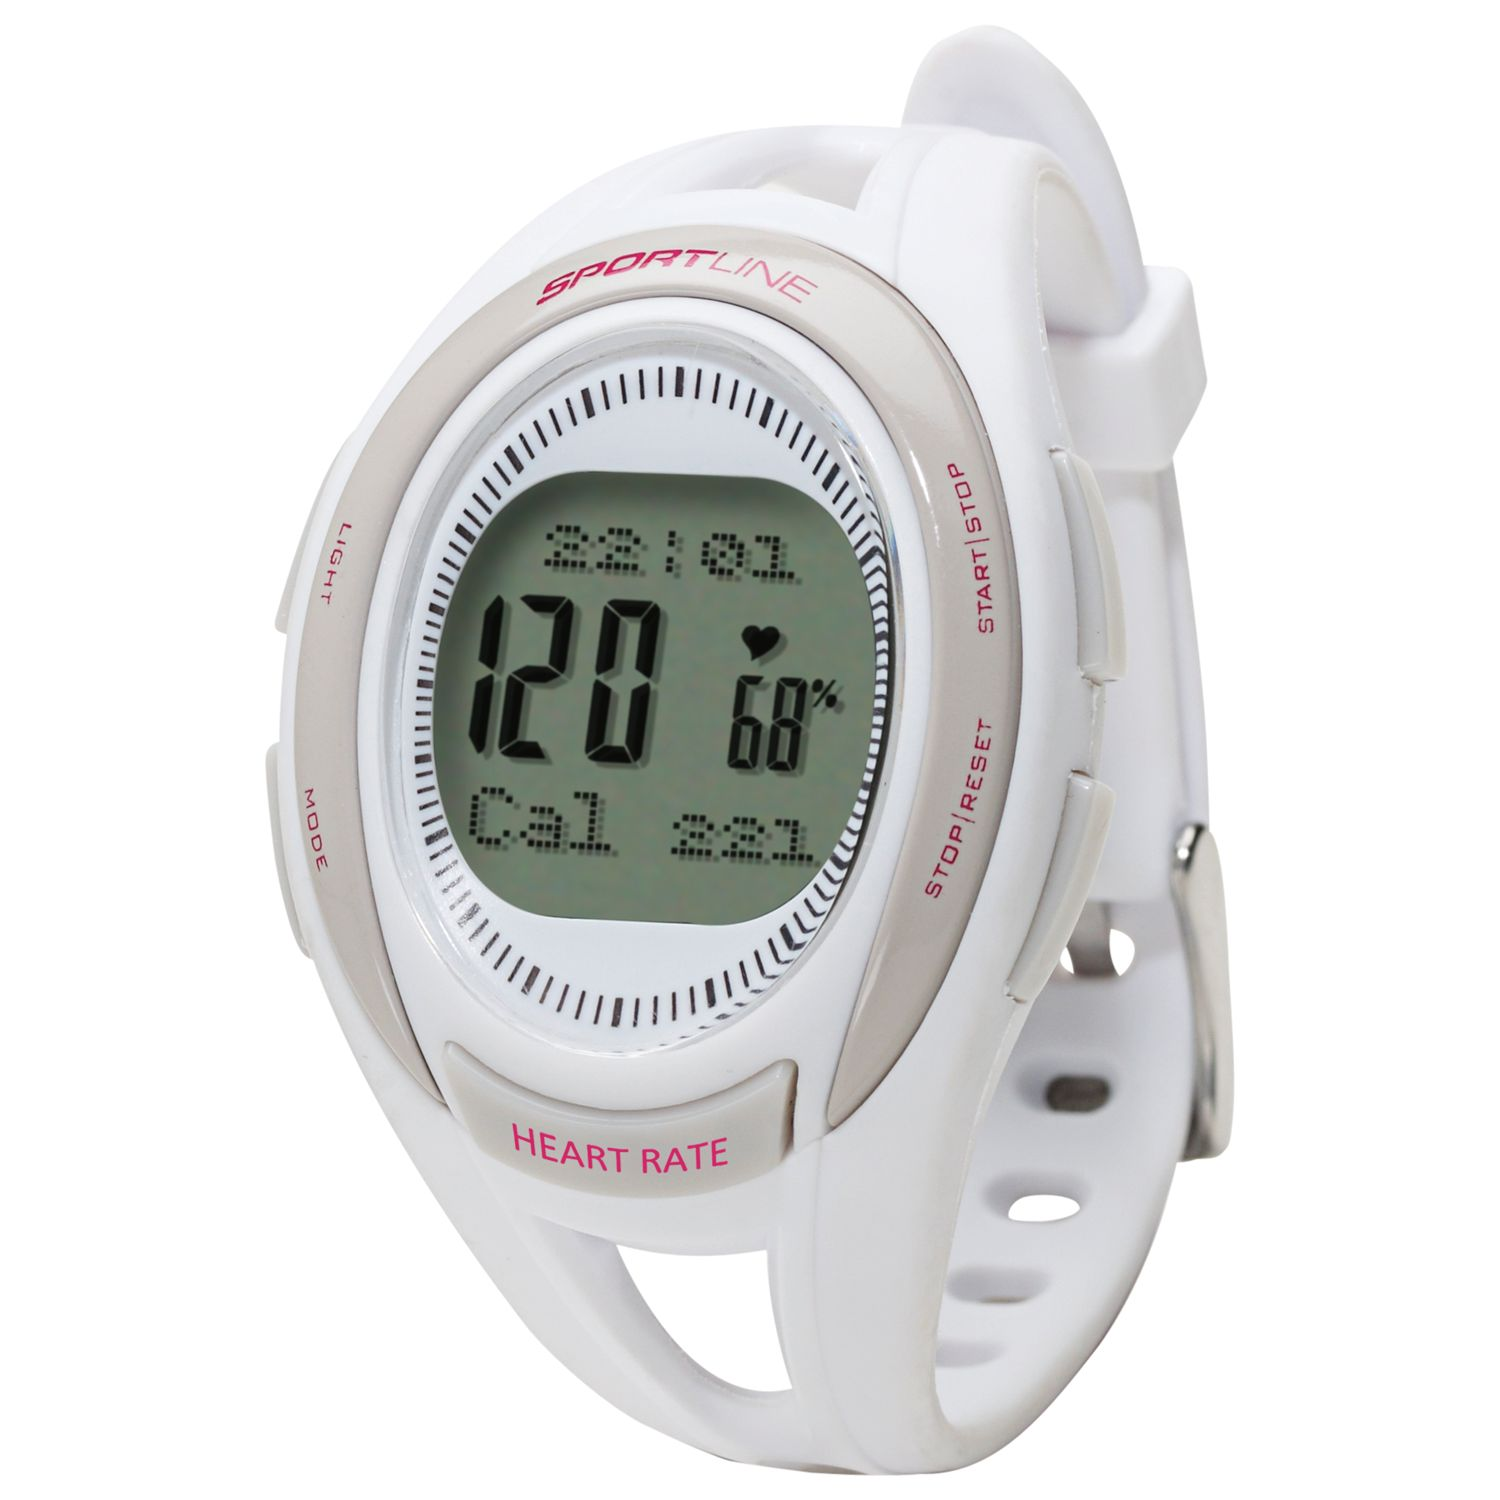 Sportline Sportline 660 Women's Cardio Heart Rate Watch, White